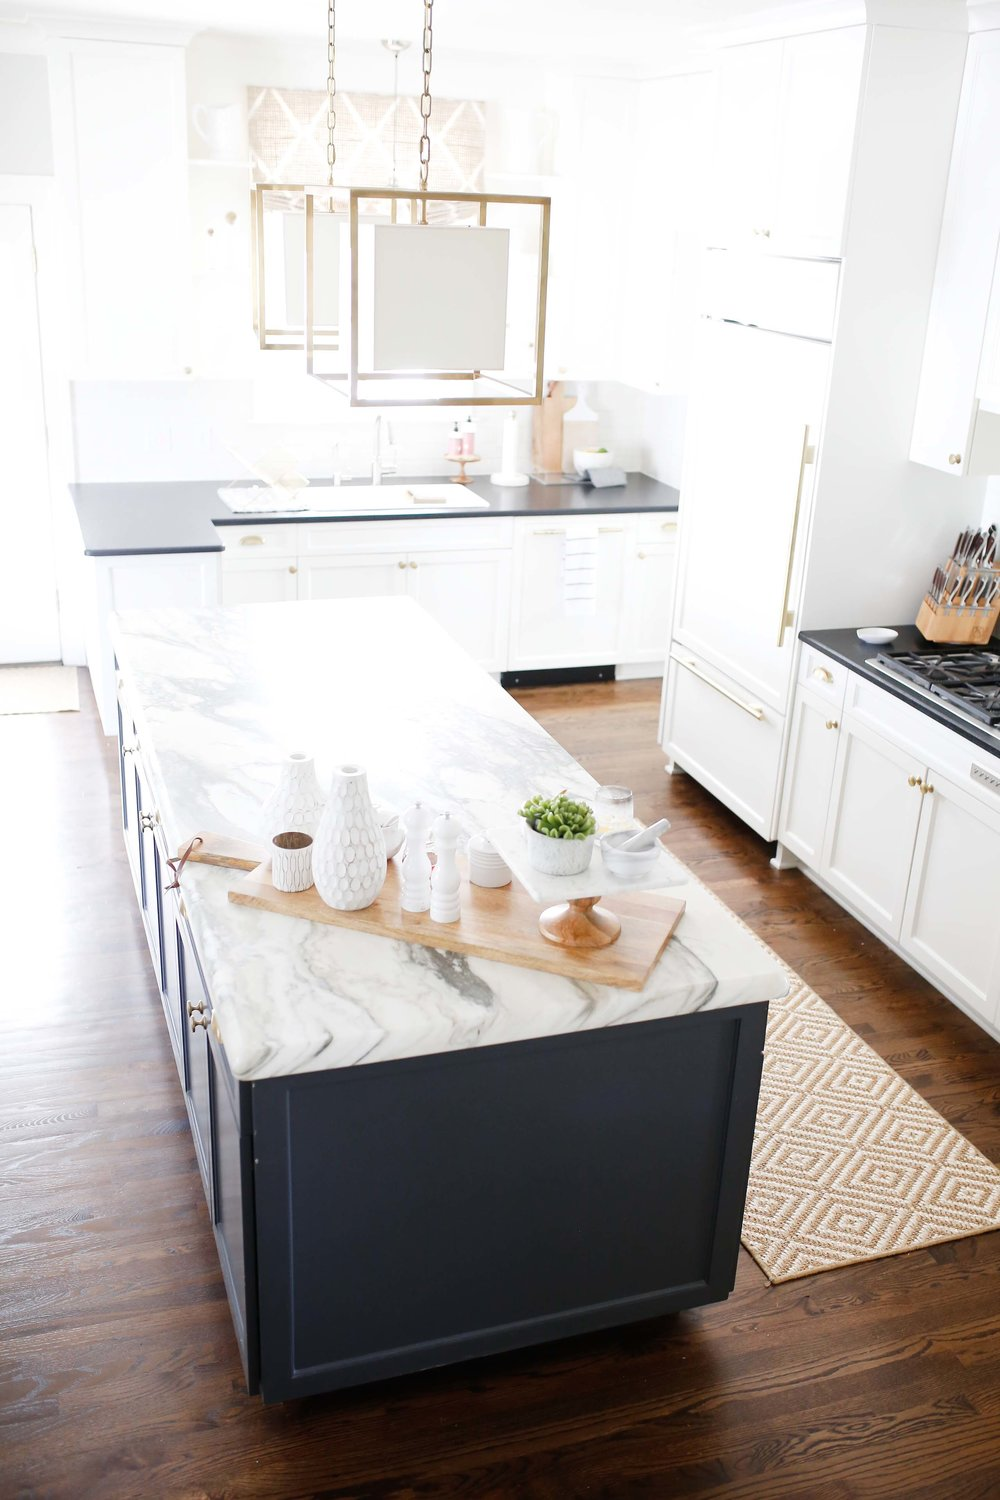 THE KITCHEN — Living With Landyn